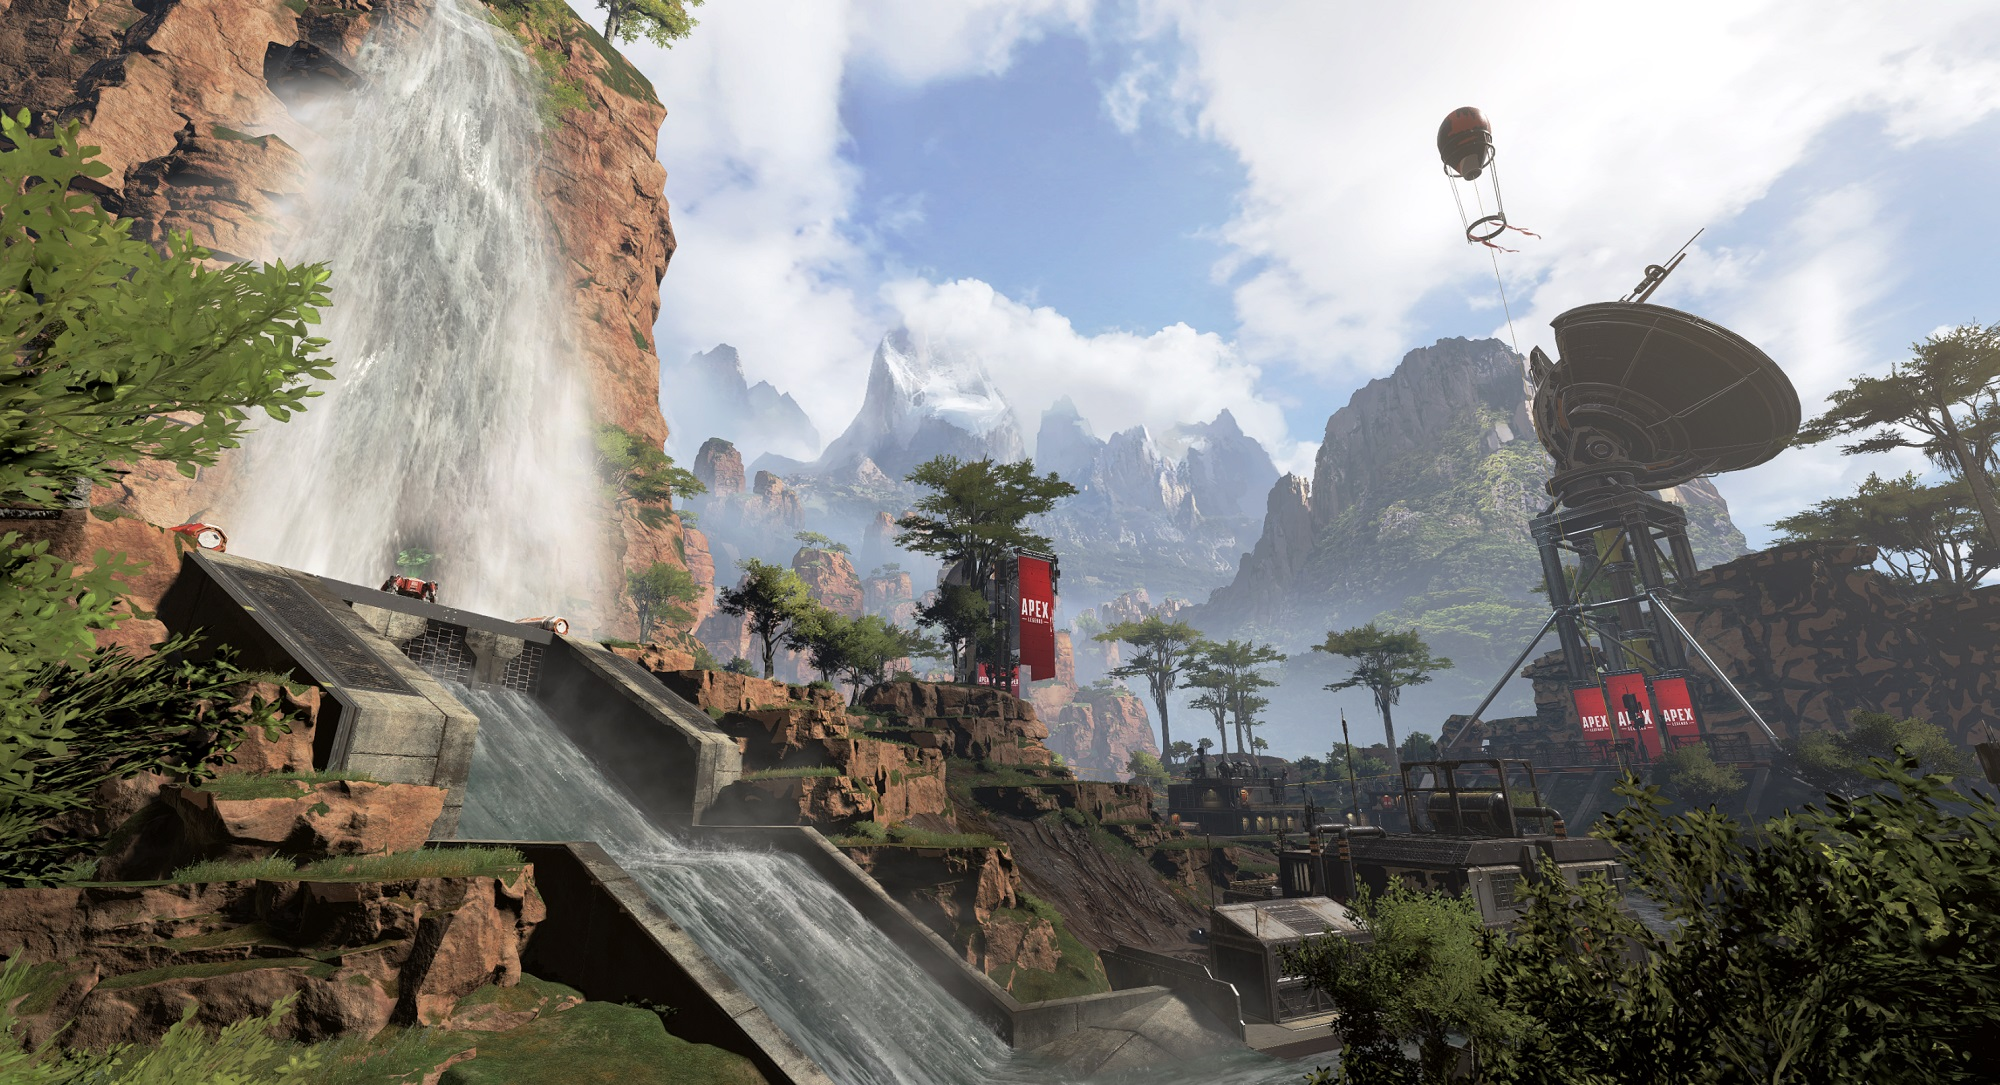 apex legends characters locked currency cosmetics legendary